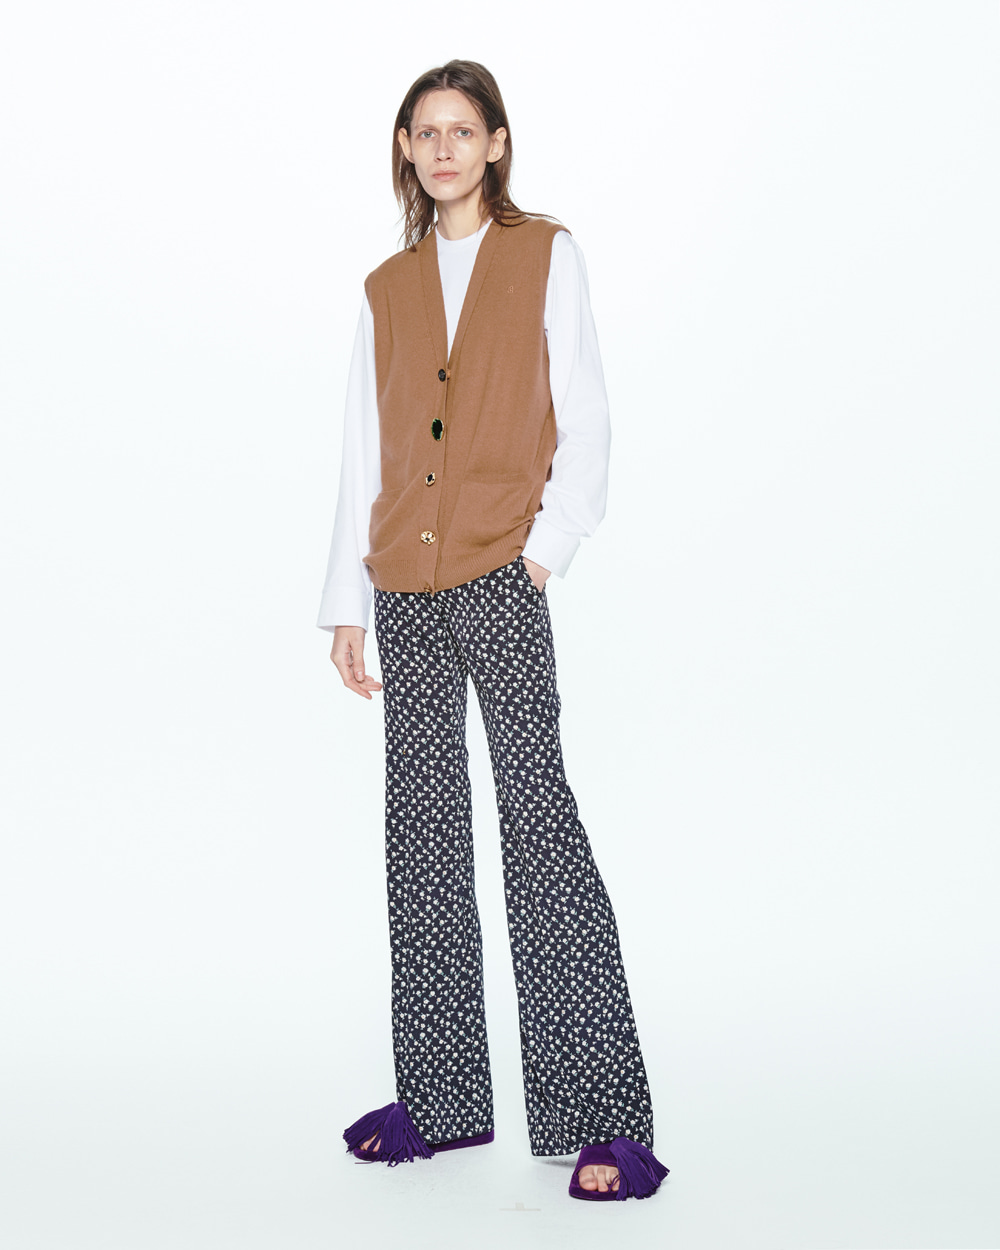 PF20 BELL BOTTOM TROUSERS